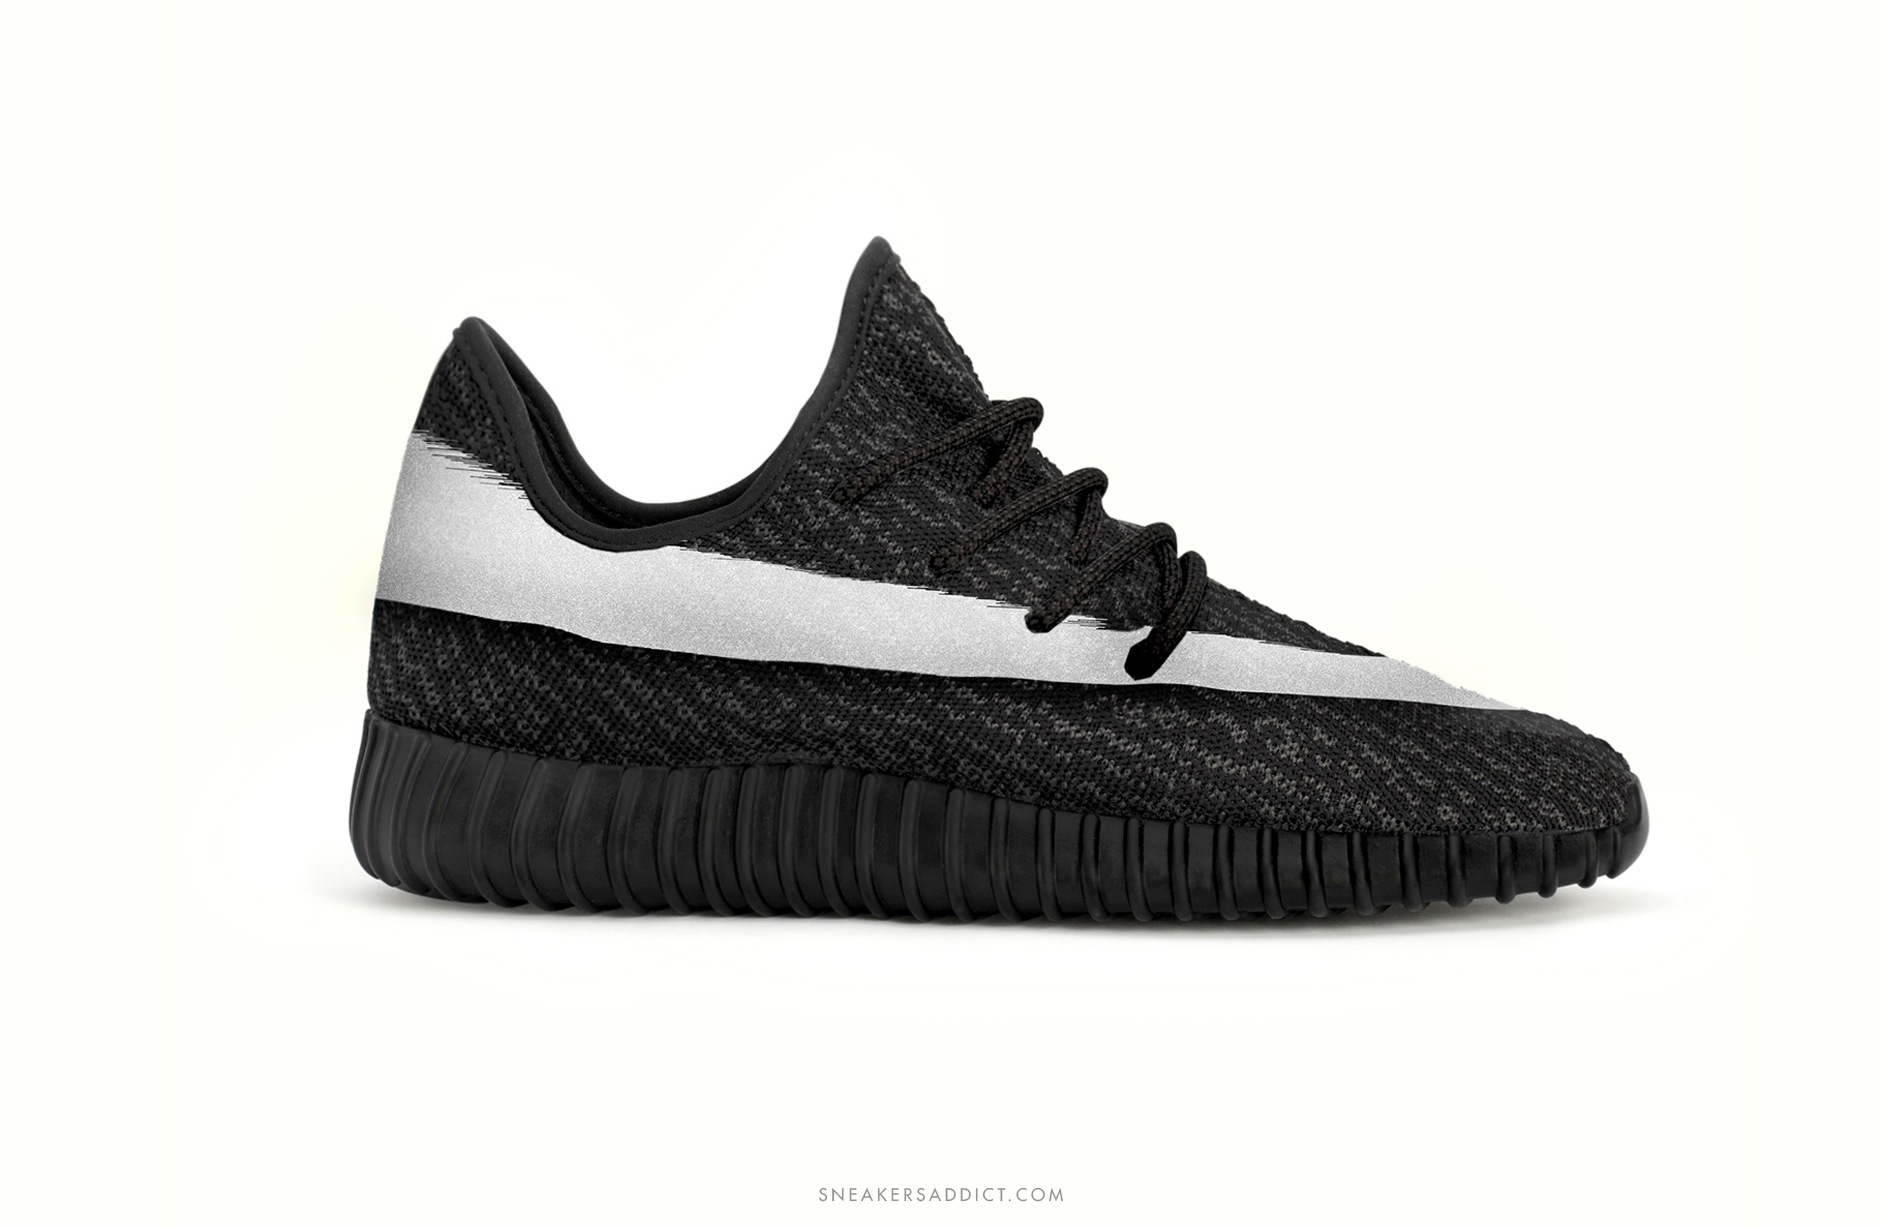 adidas yeezy boost 350 3 new colorways sneakers addict. Black Bedroom Furniture Sets. Home Design Ideas